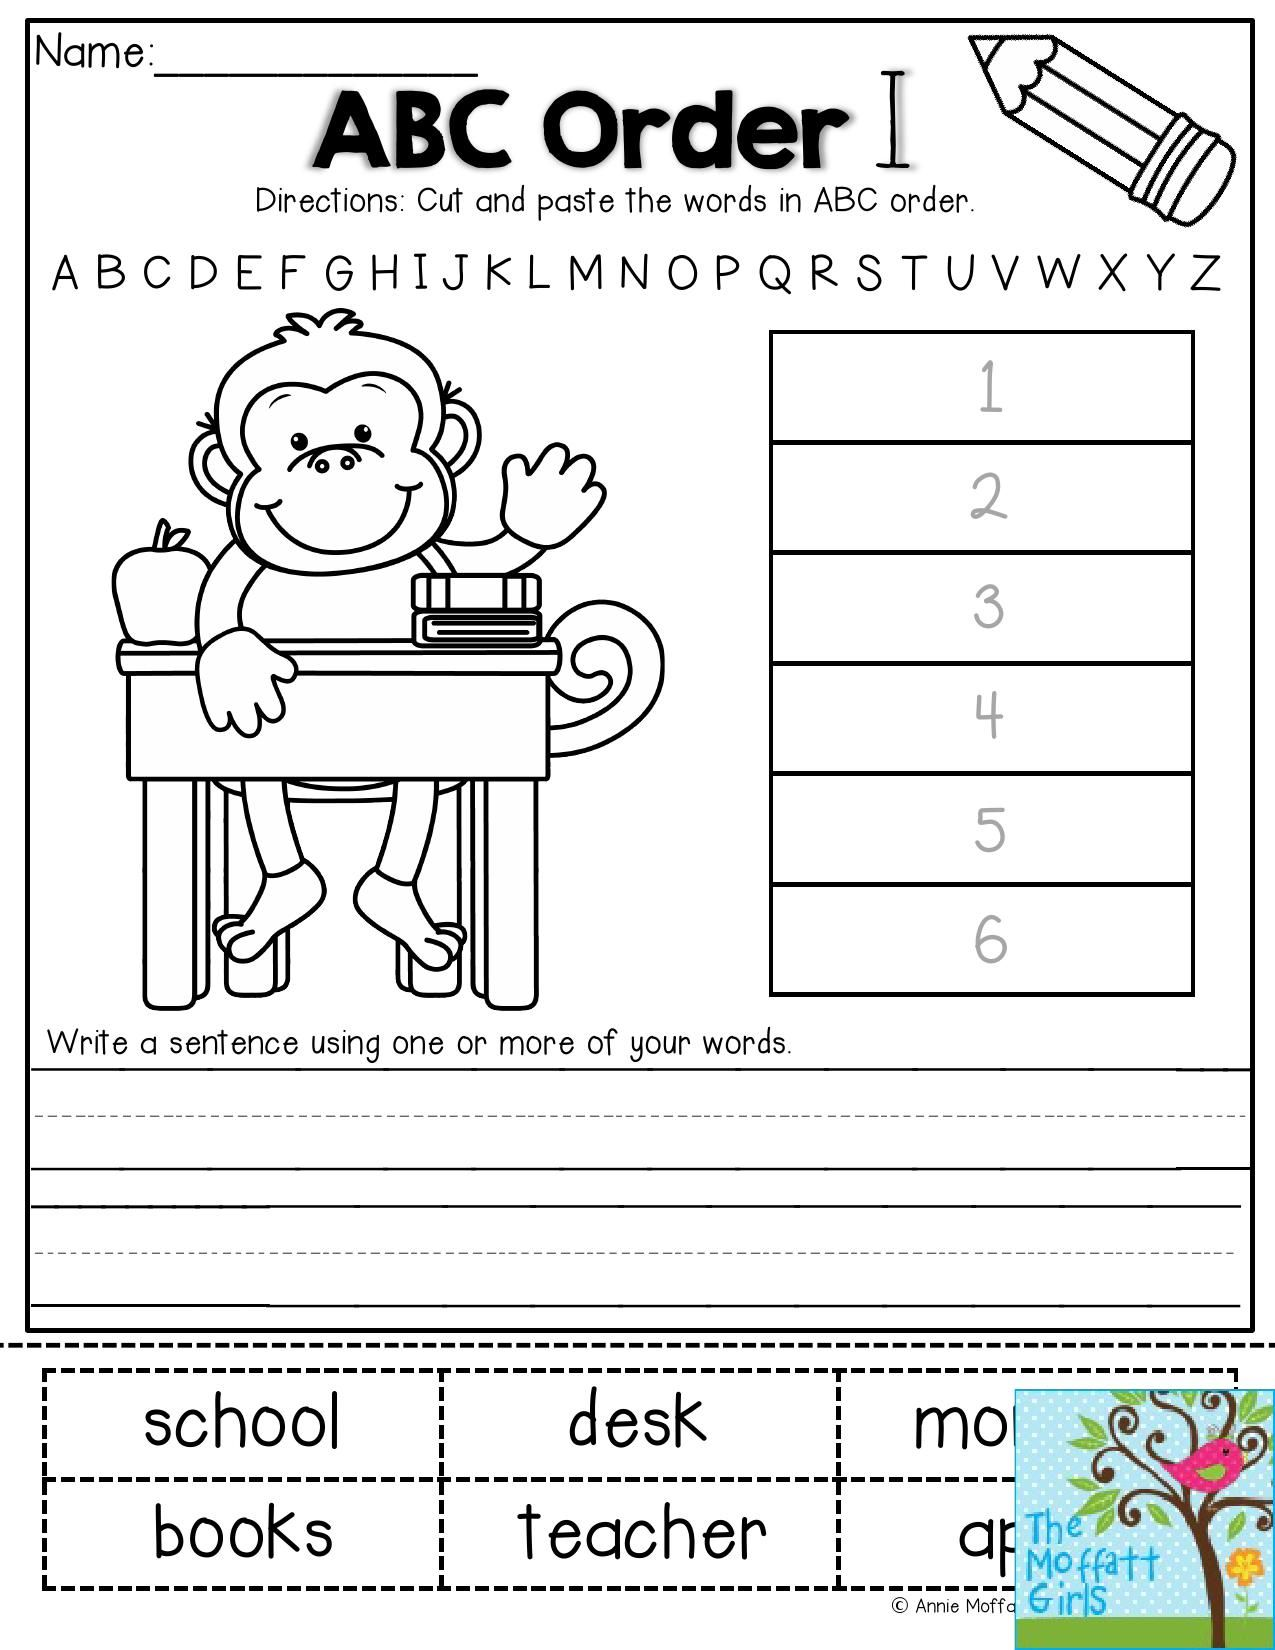 Abc Order Cut And Paste The Words In Alphabetical Order Then Write A Sentence Using The Words